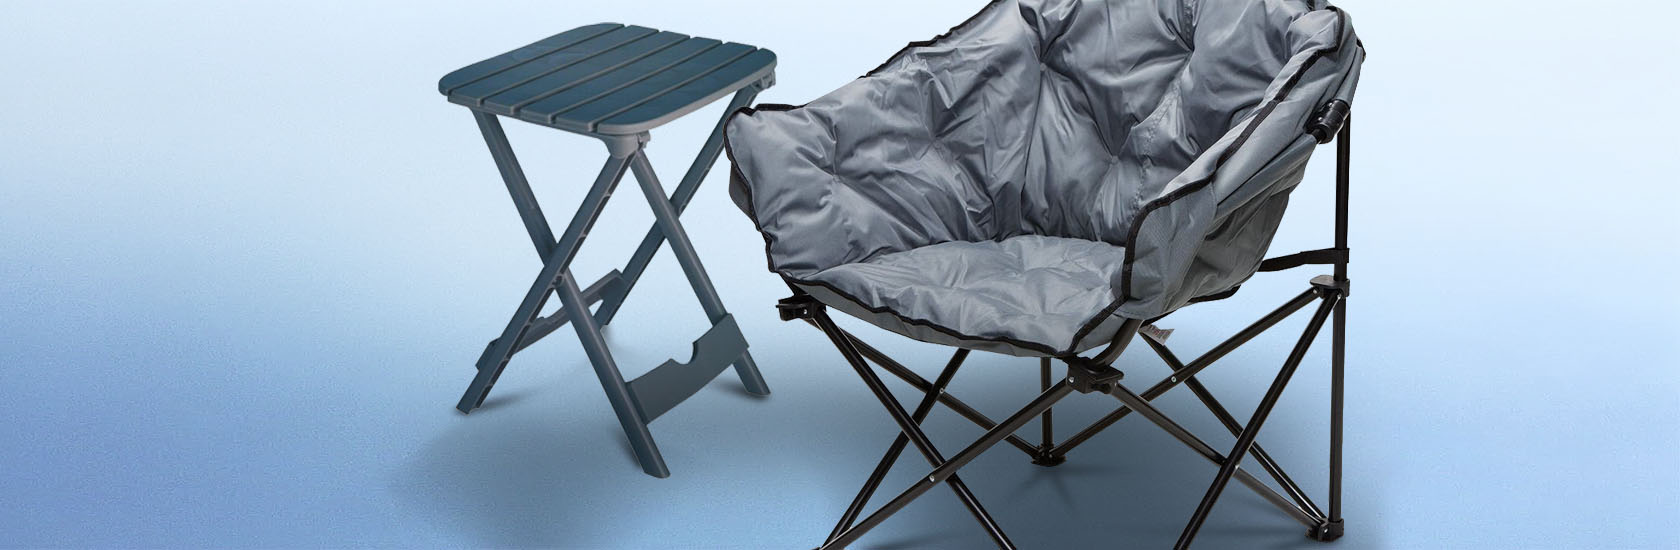 Save up to 40% on Outdoor Tables & Chairs